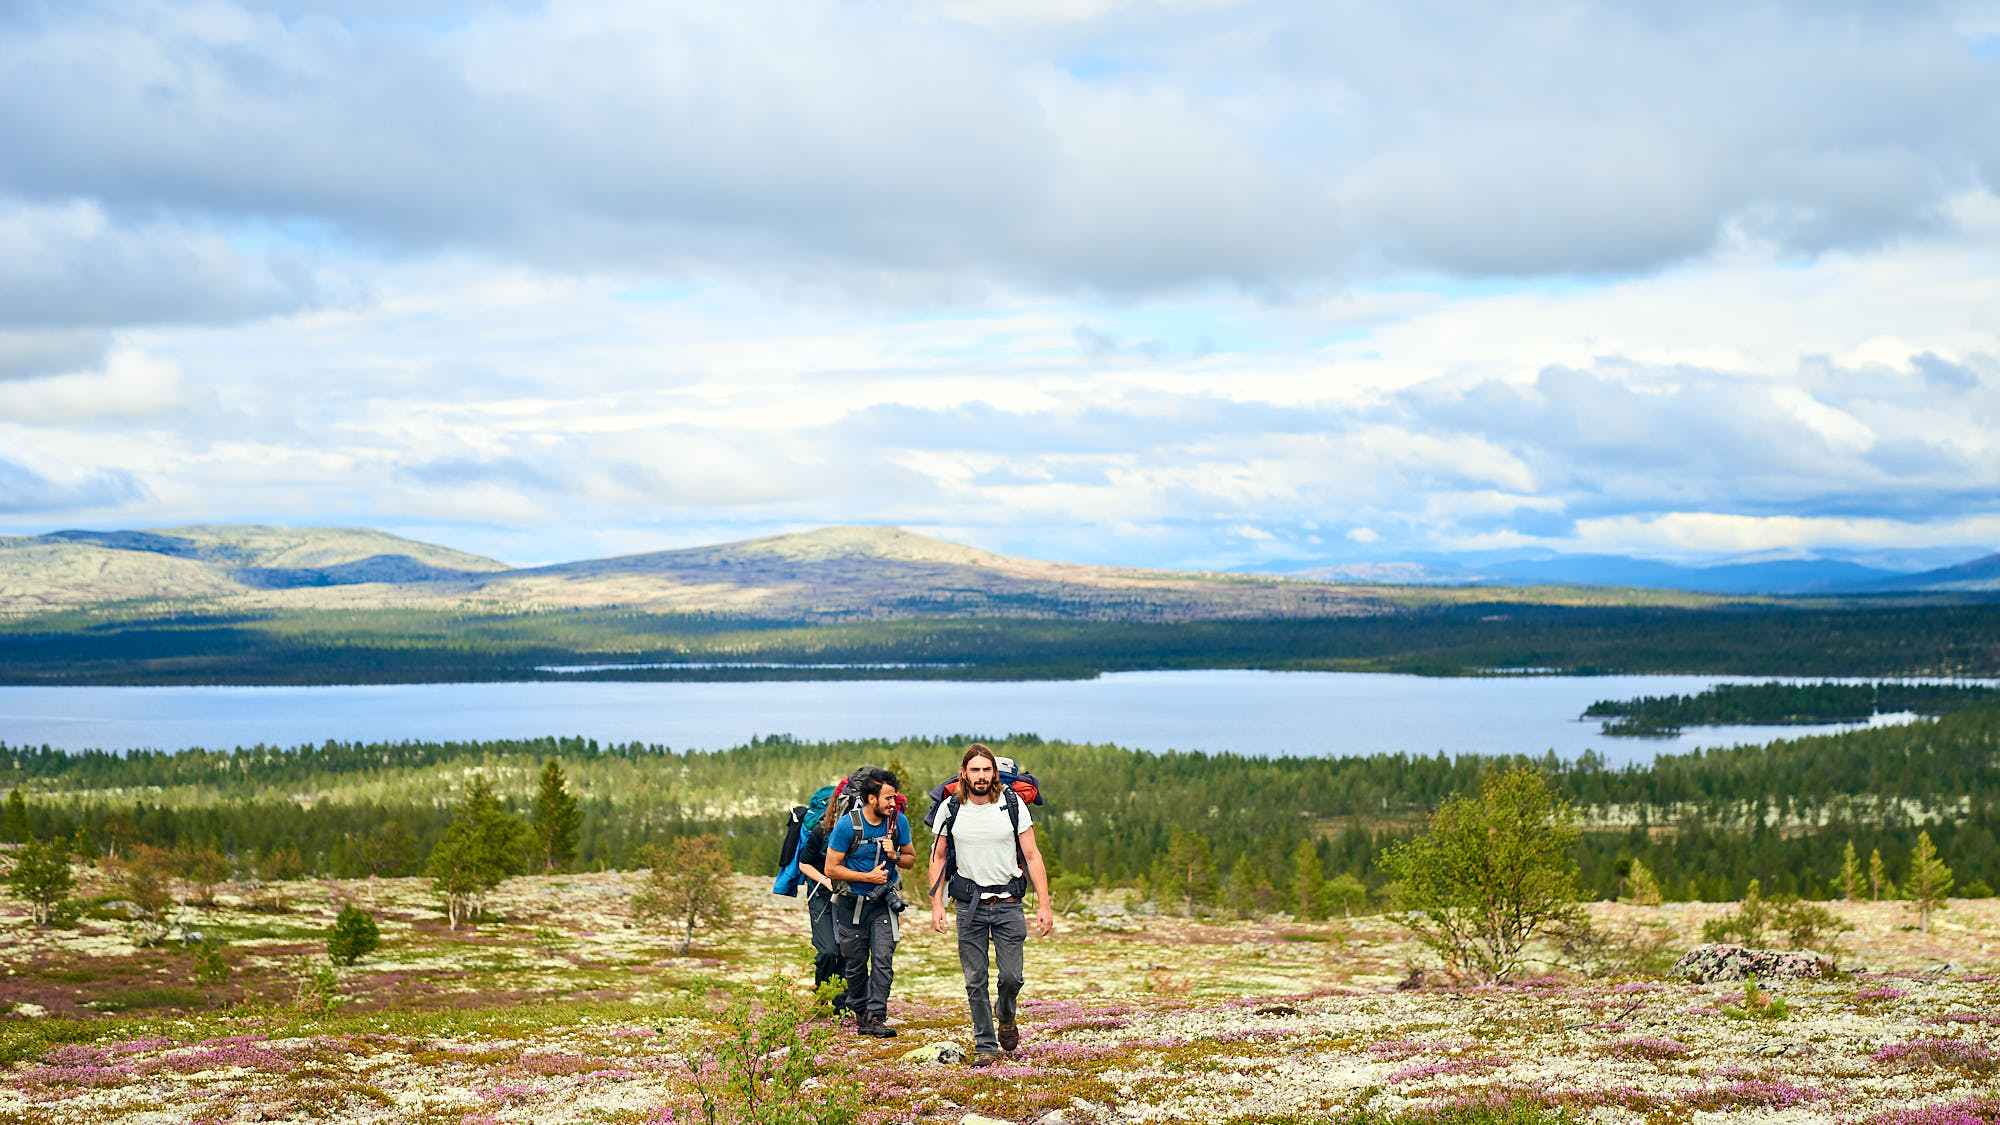 Hikers in a wide landscape in rural Norway